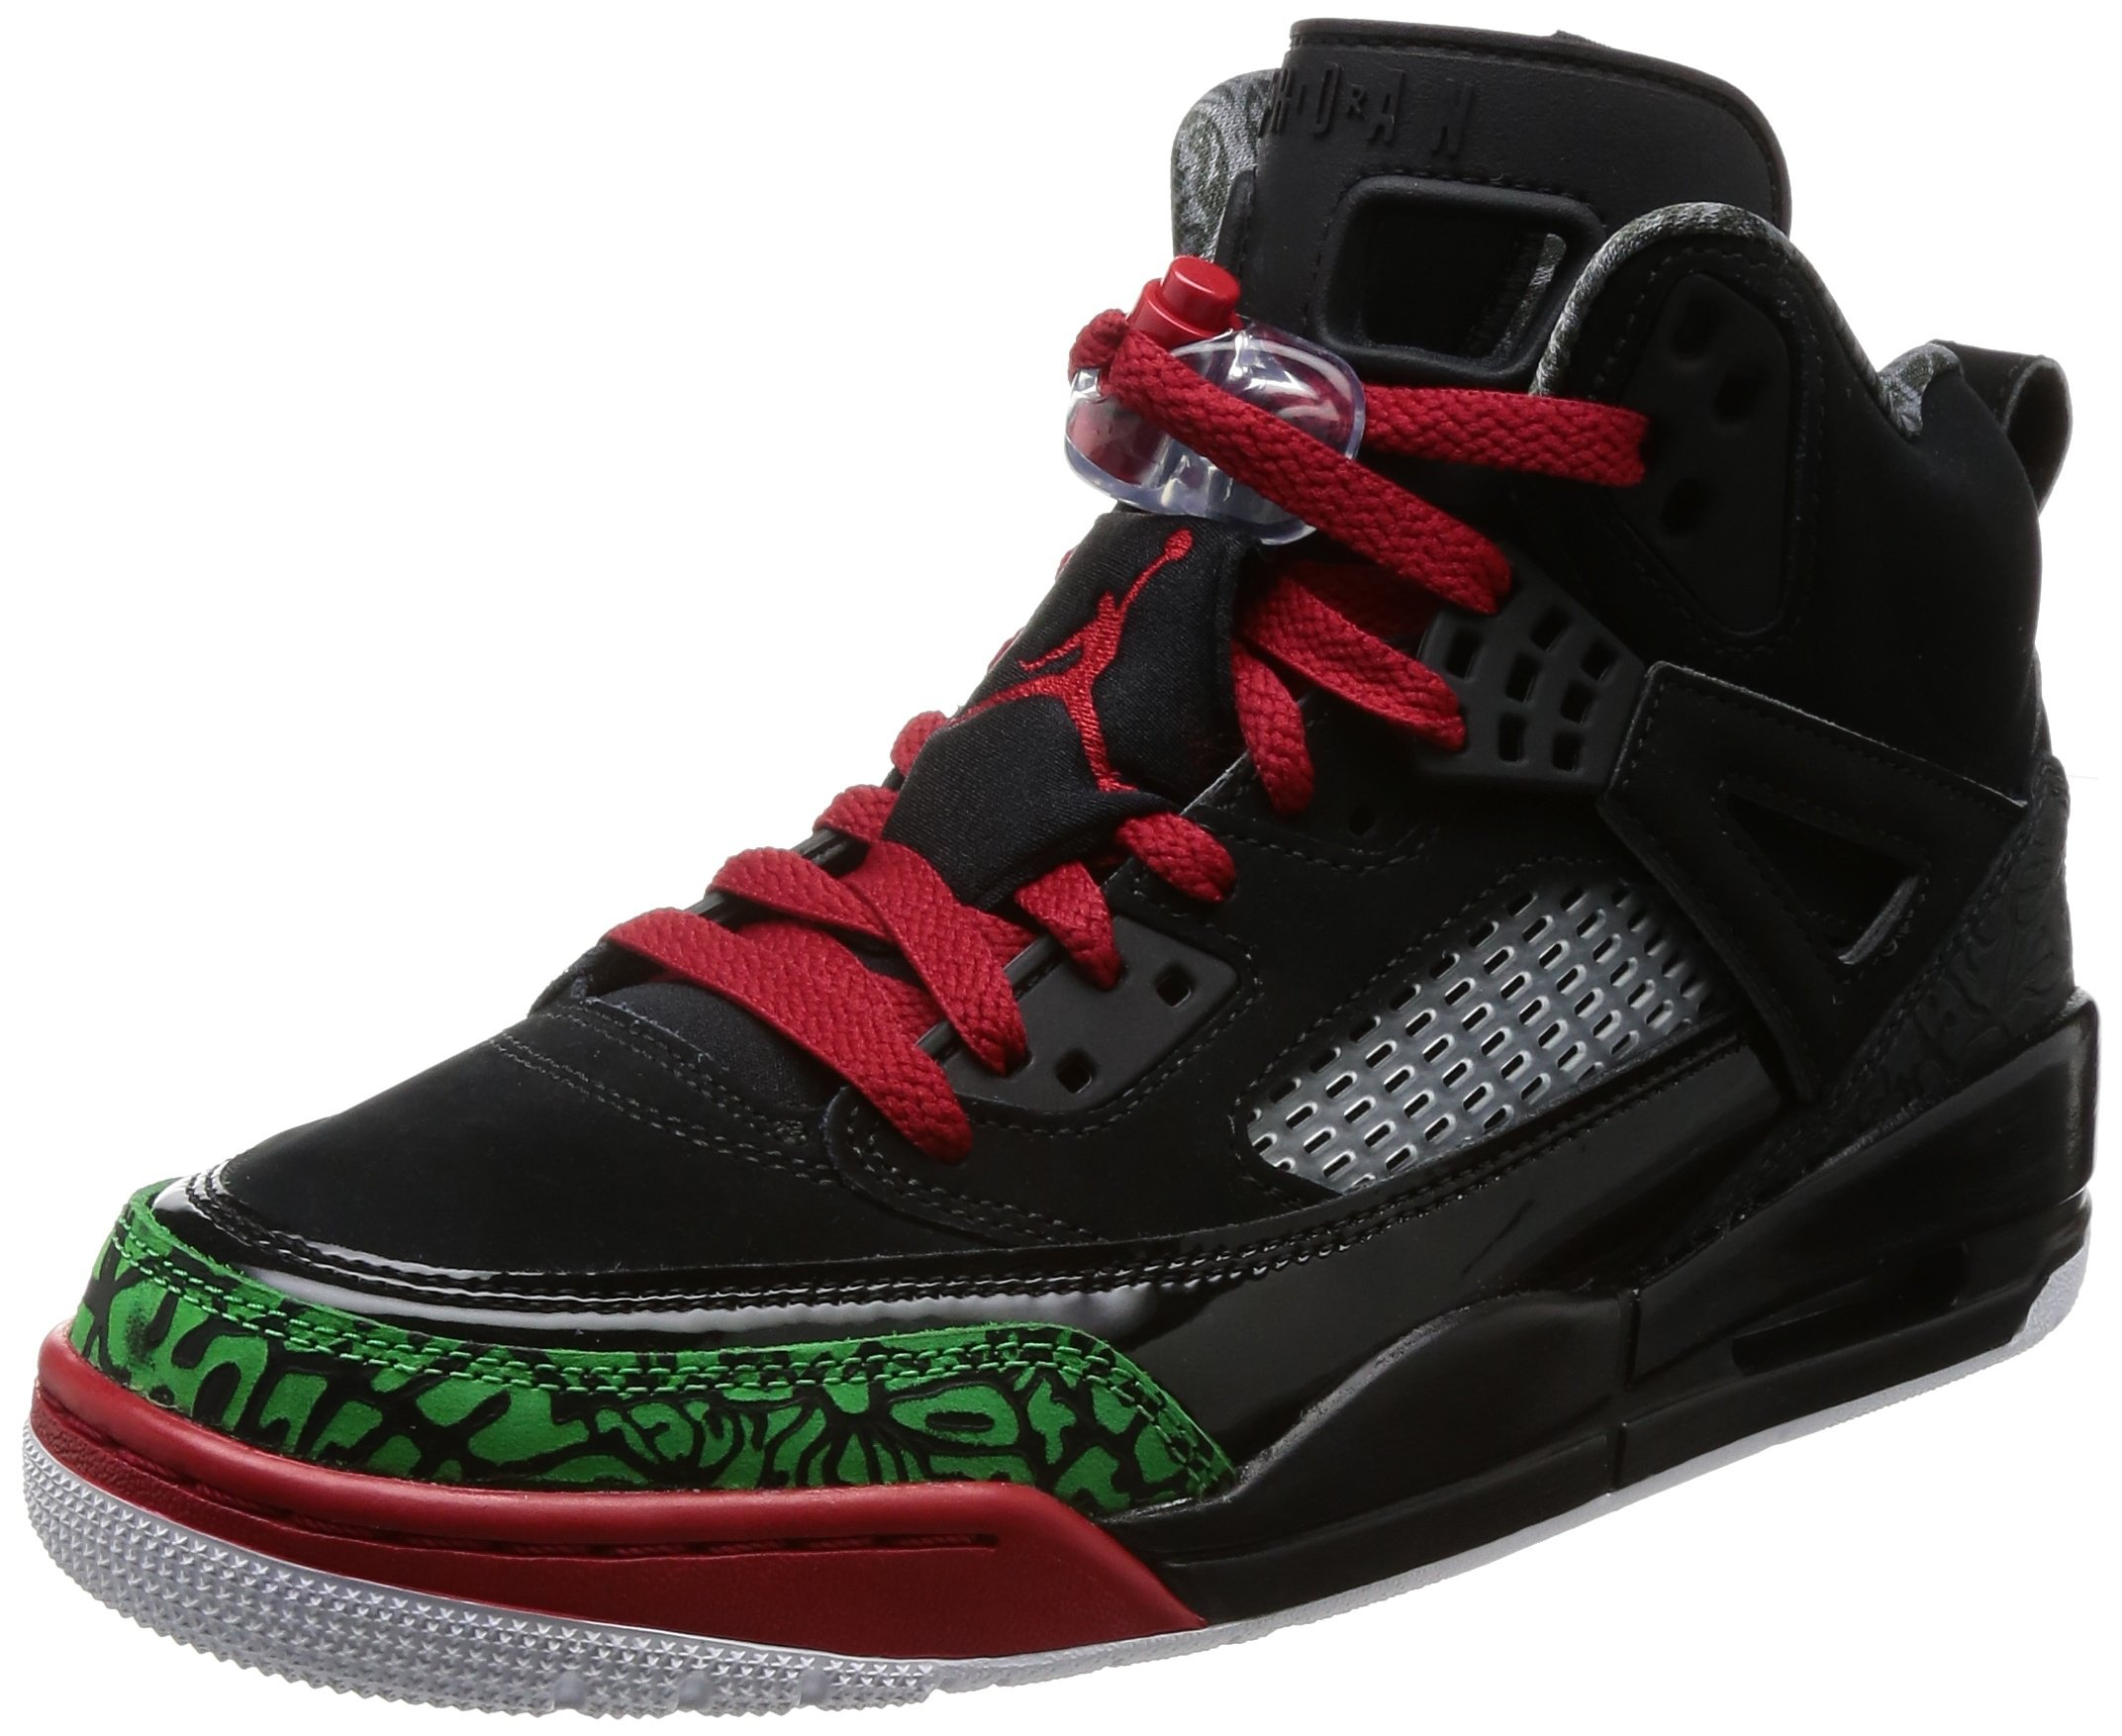 Nike Jordan Spizike Mens Basketball Shoes (11 D(M) US)